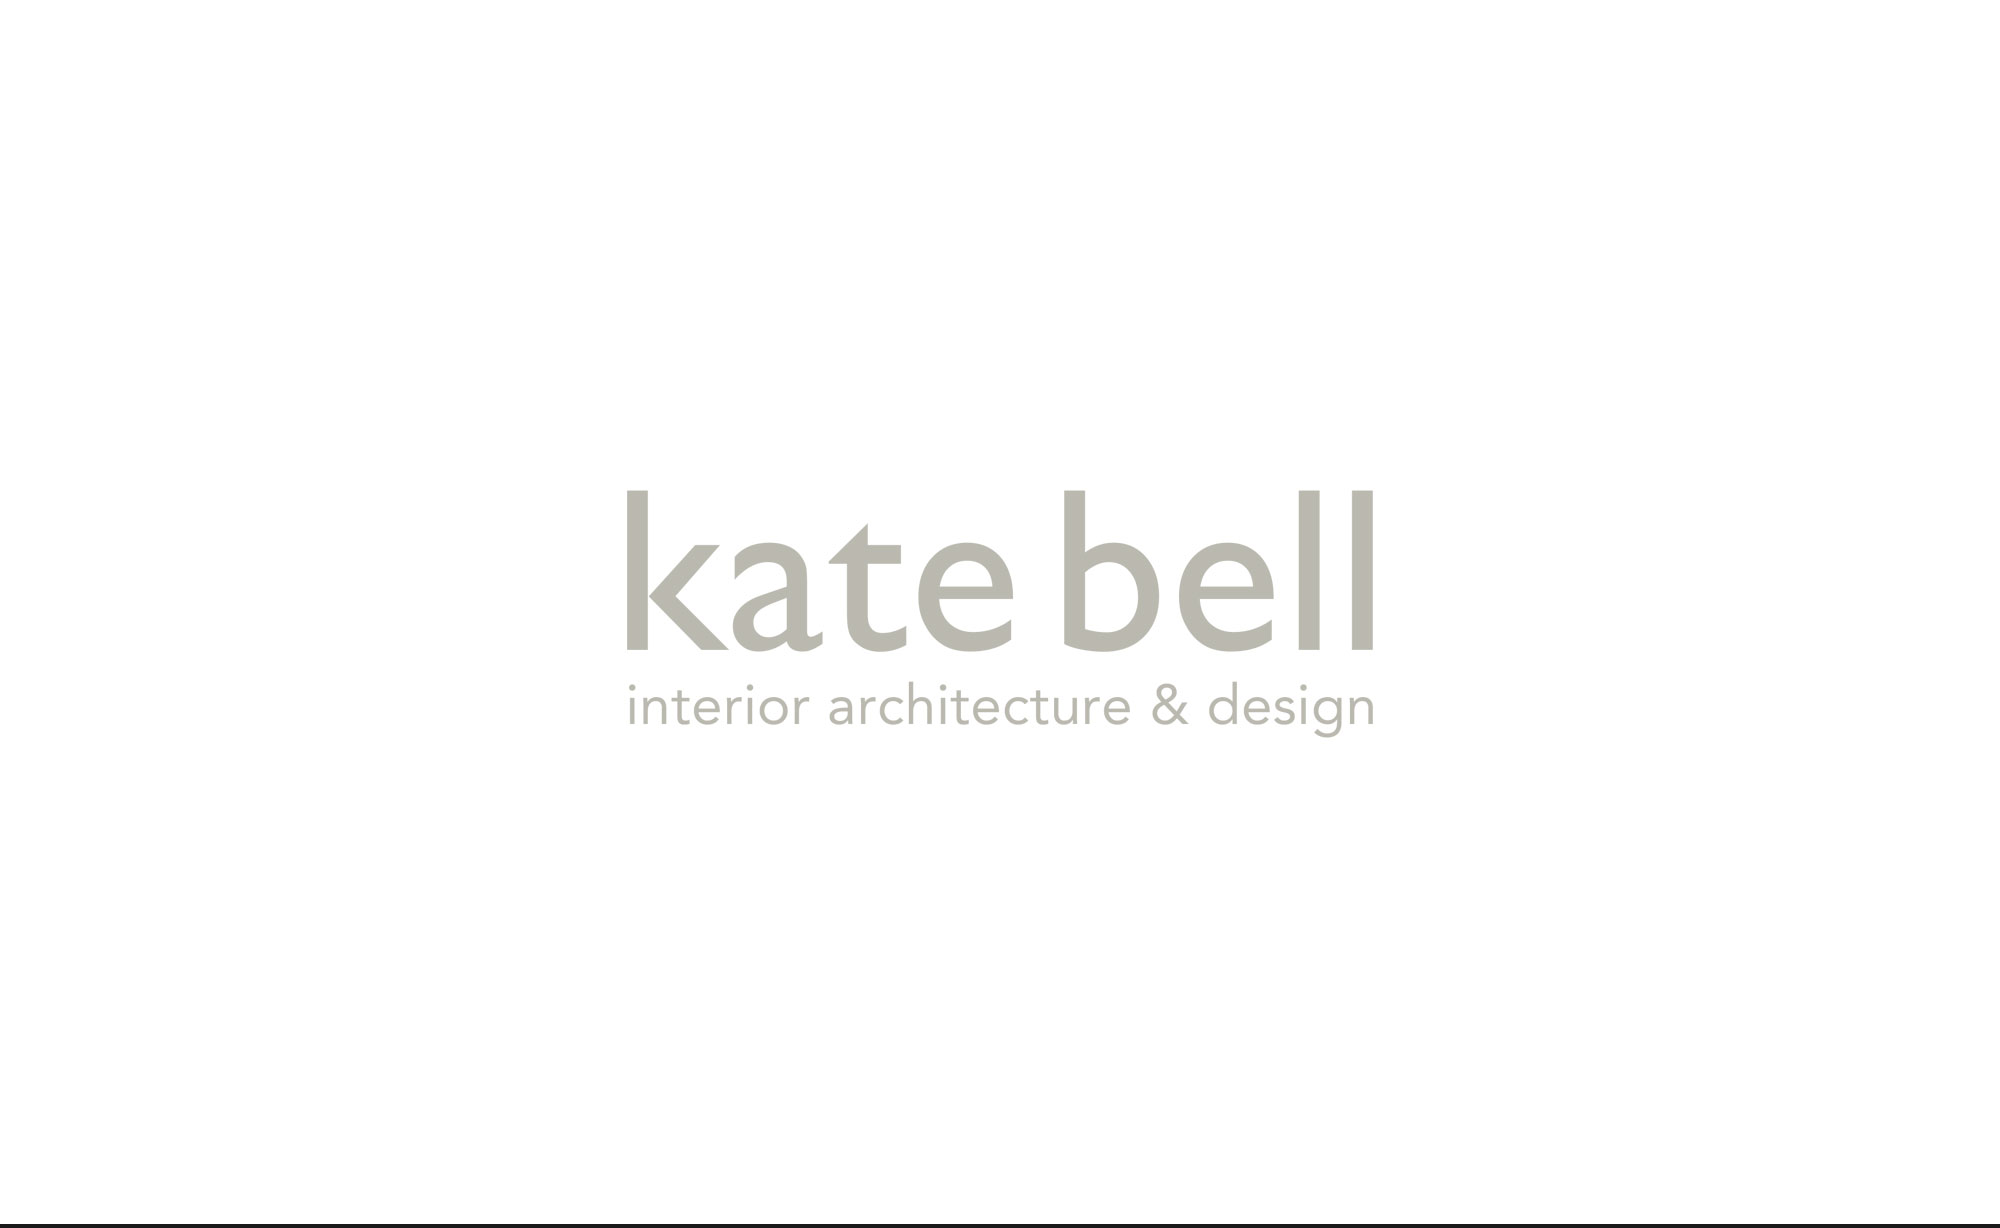 ©-Chris-Rae-Design-Kate-Bell-Interior-Architecture-and-Design-Brand-and-Identity-Design-01.jpg